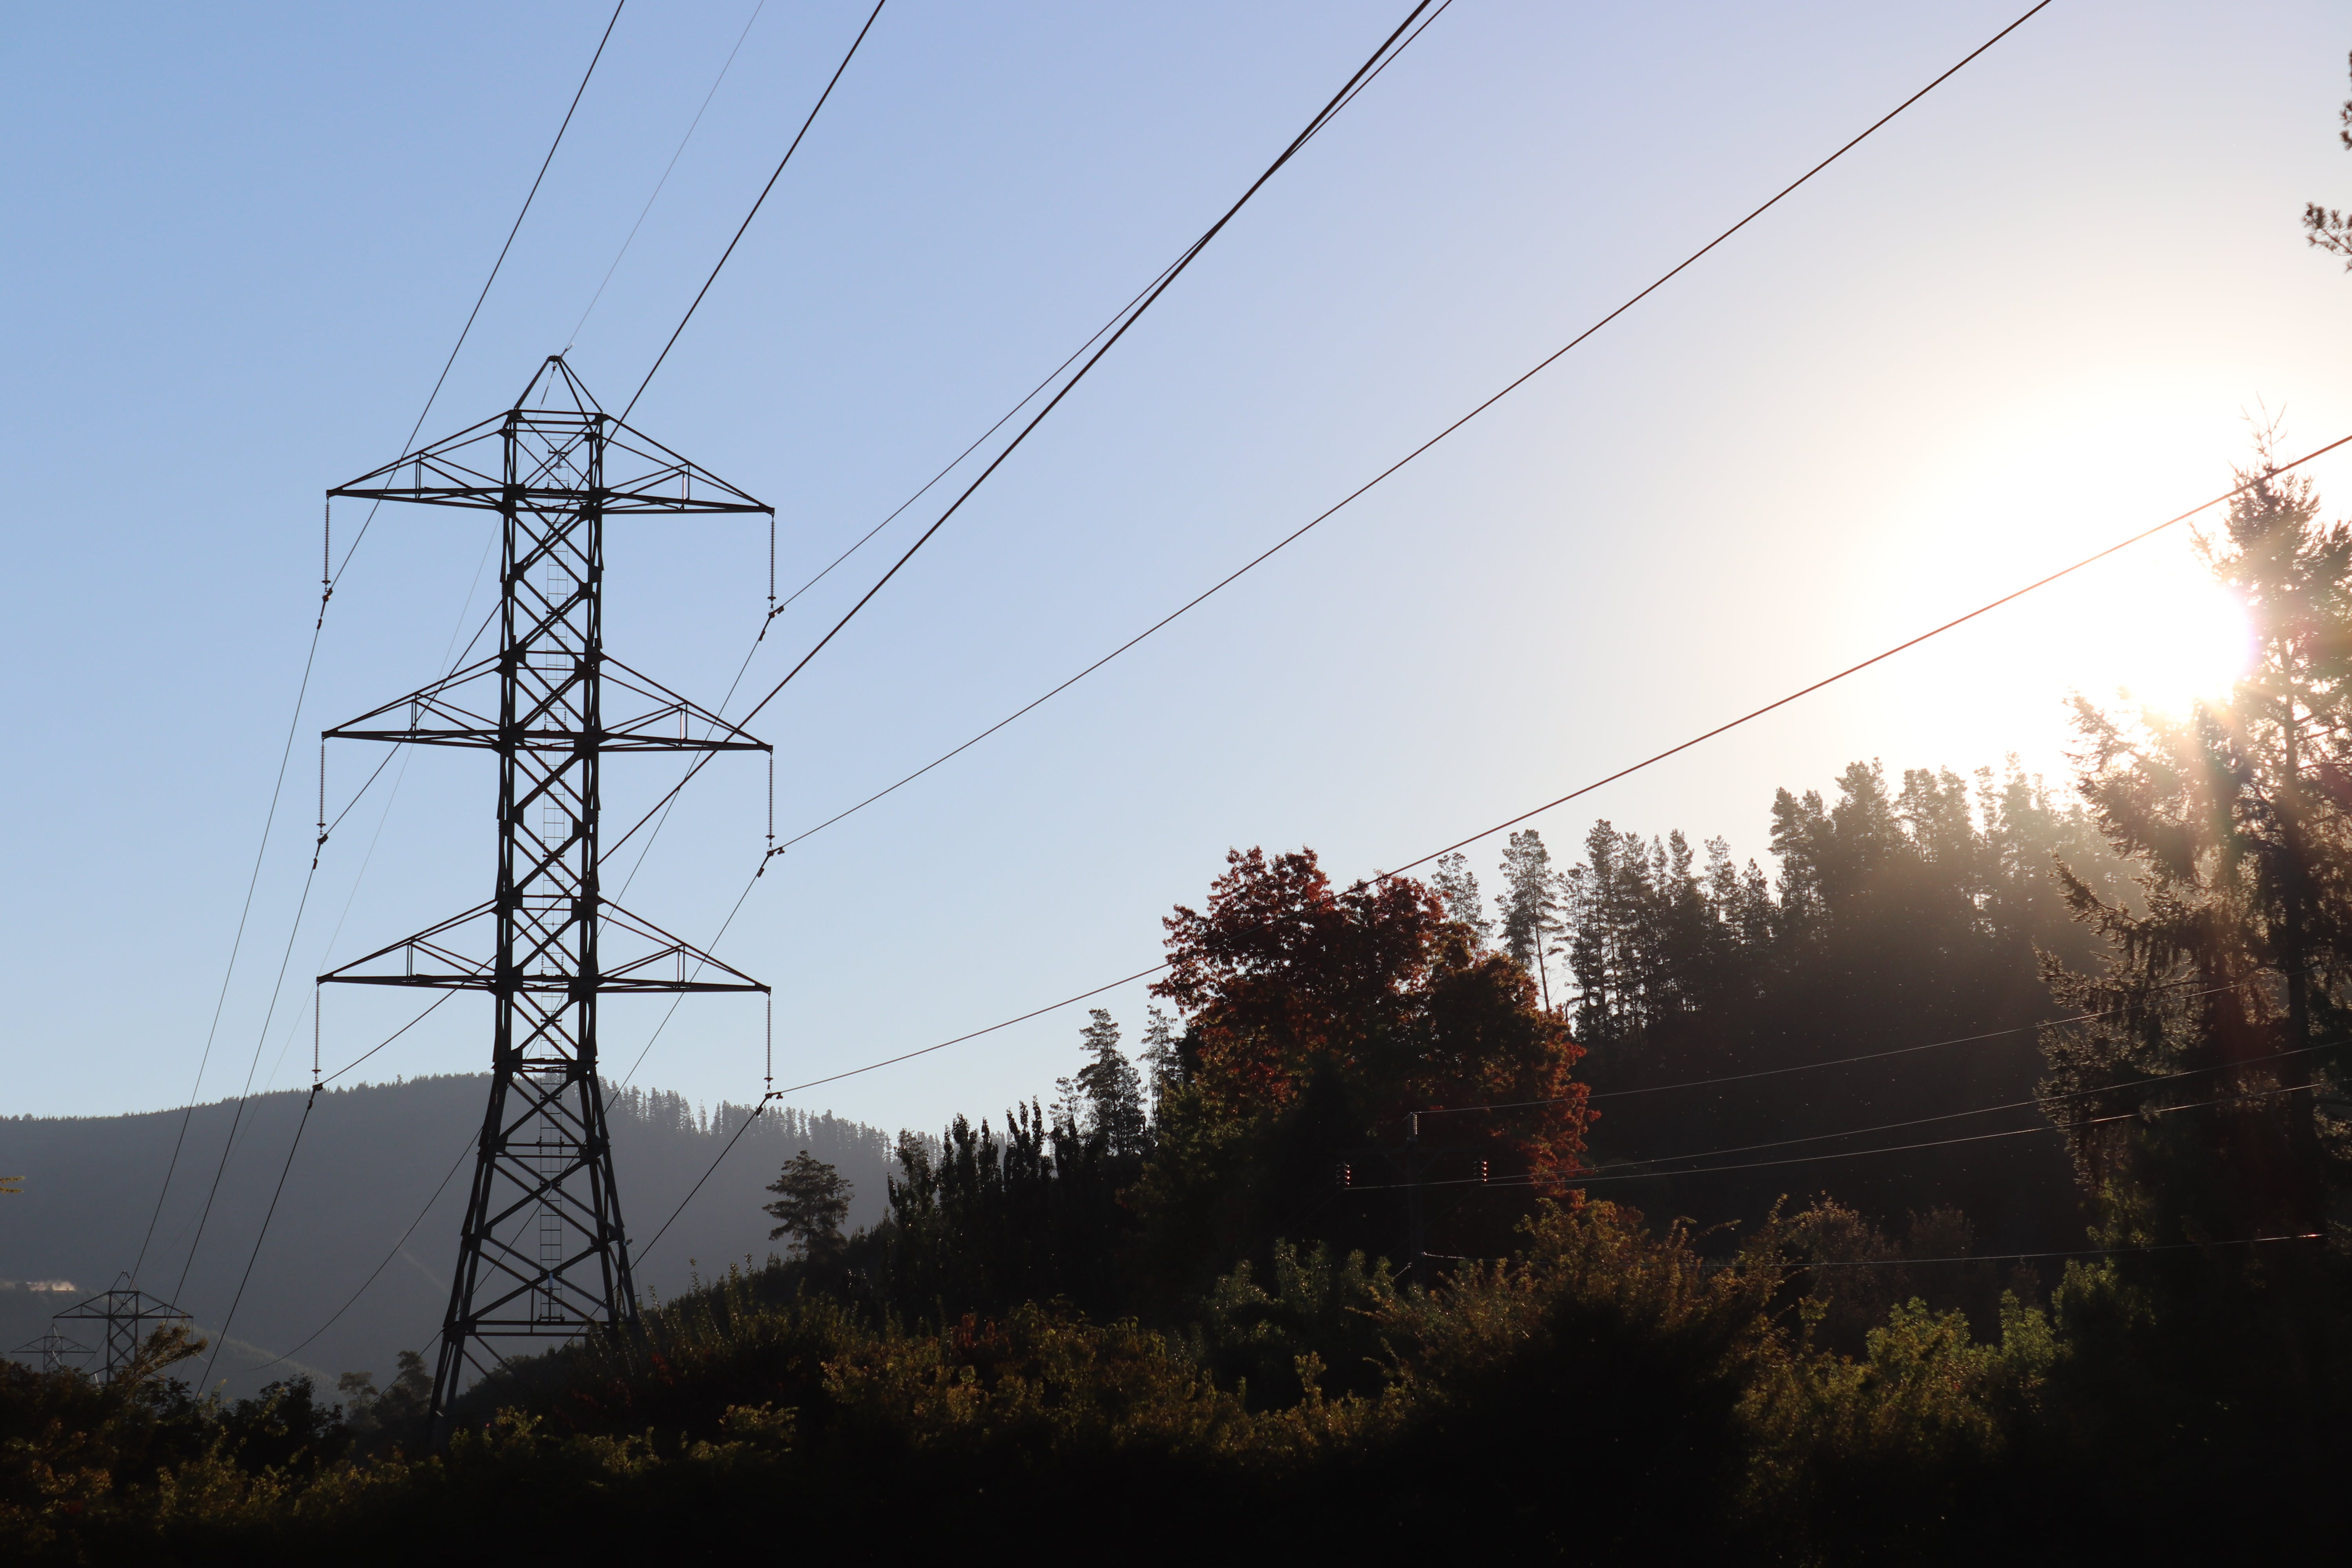 Free stock photo of electrical wires, evening sun, landscape, mountain